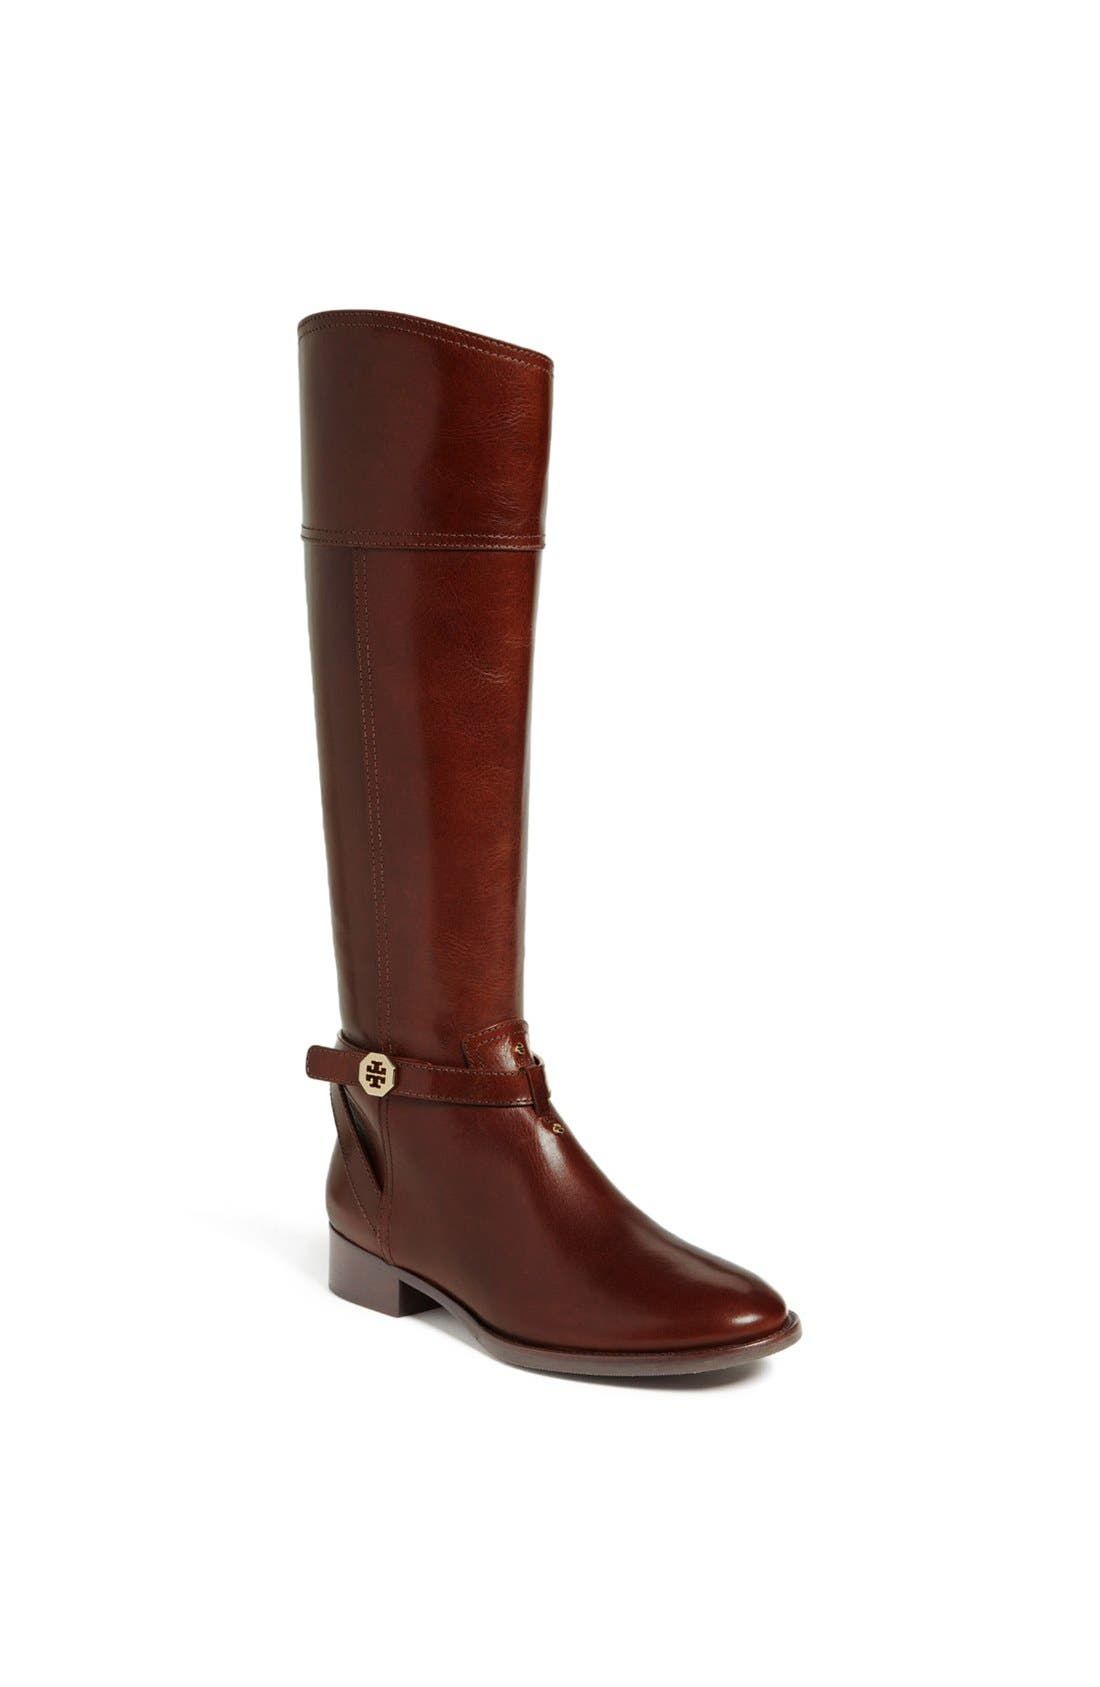 Alternate Image 1 Selected - Tory Burch 'Brita' Riding Boot